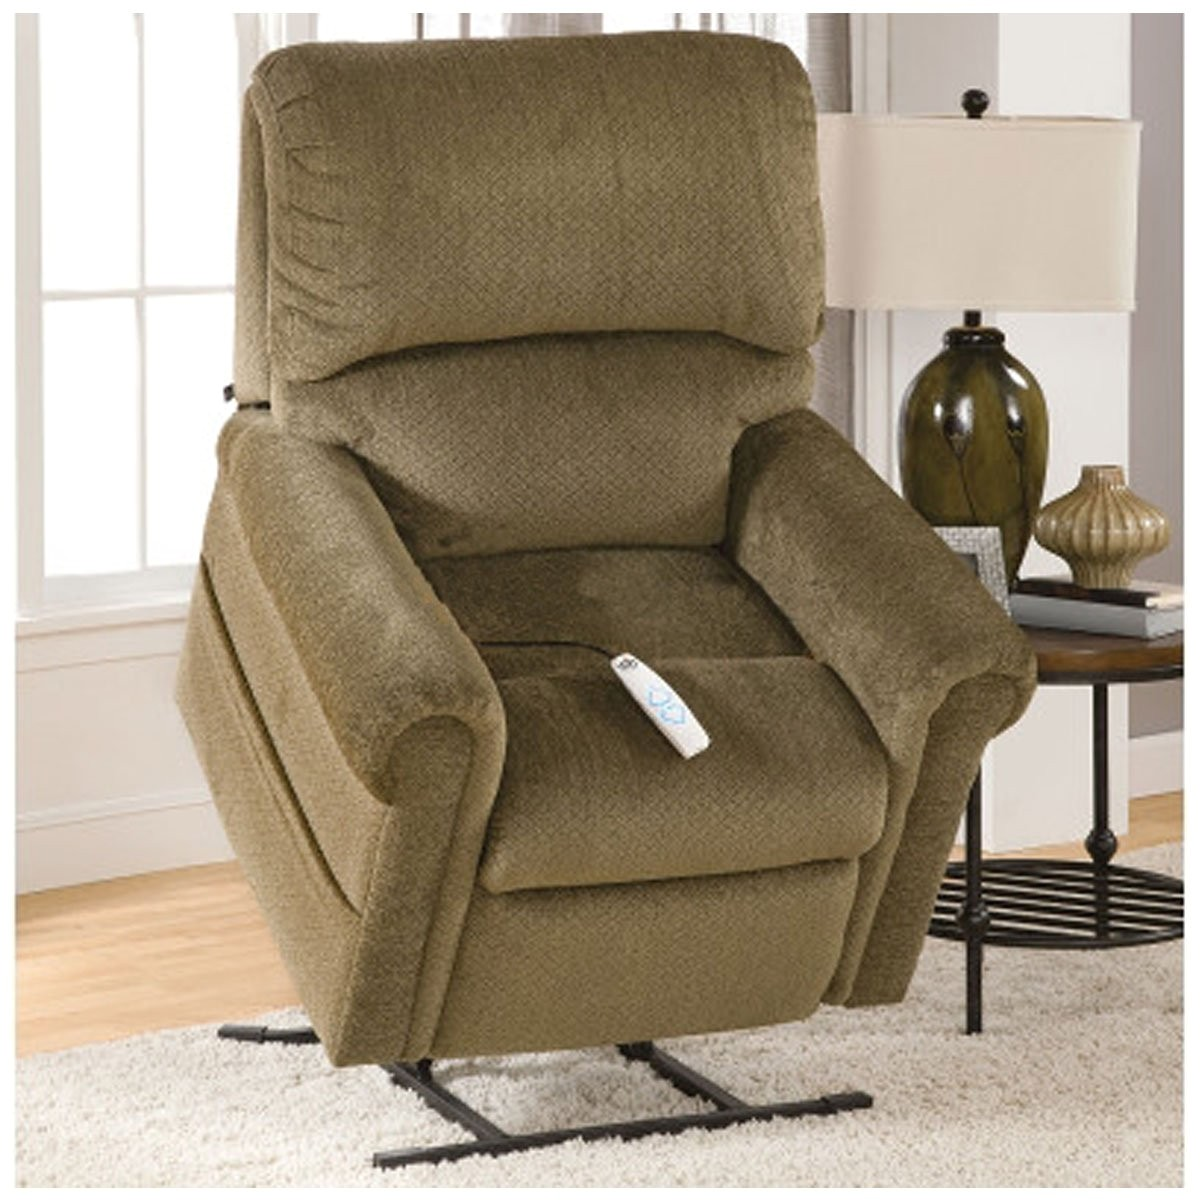 top rated recliner for relieving lower back aches and pains